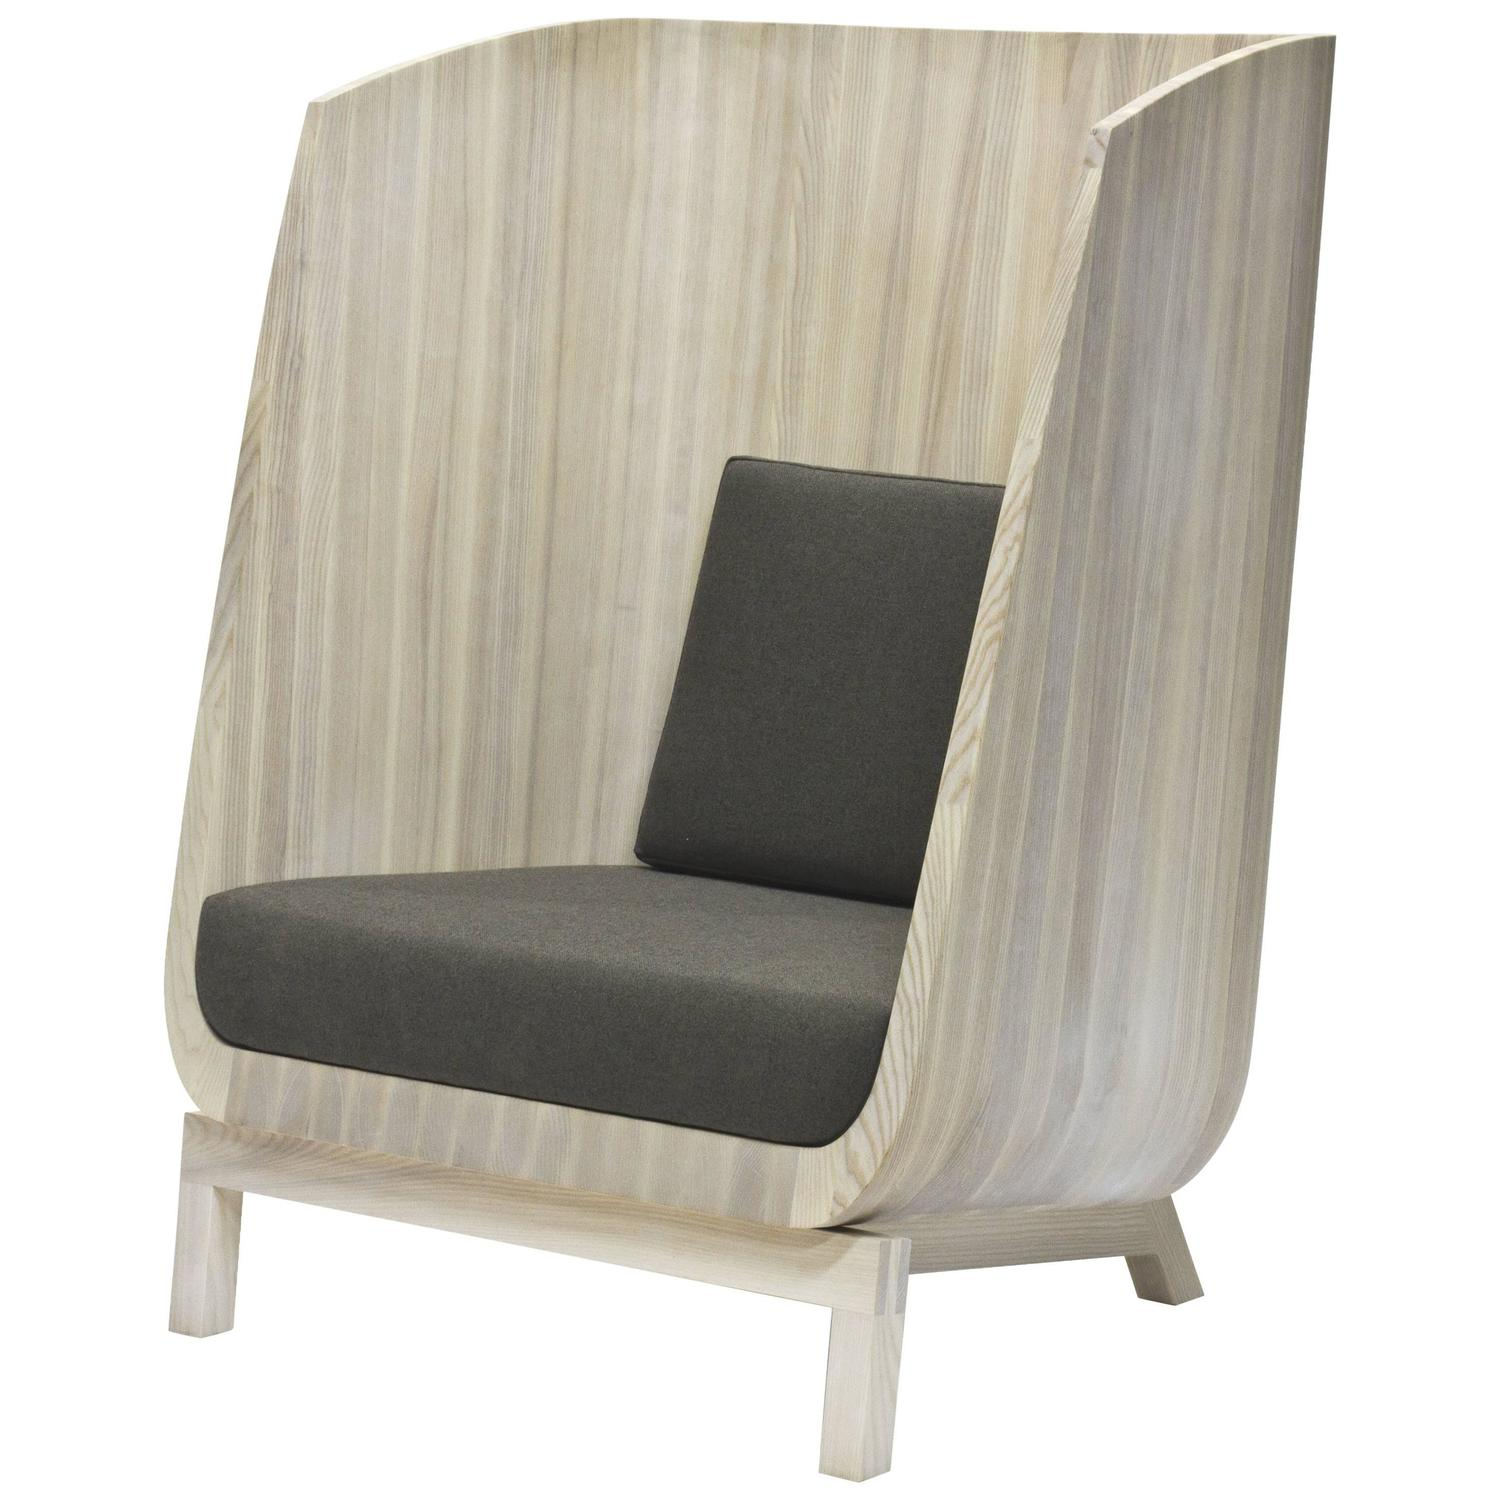 Husk Privacy Chair in Solid Ash by Laura Mays for Wooda